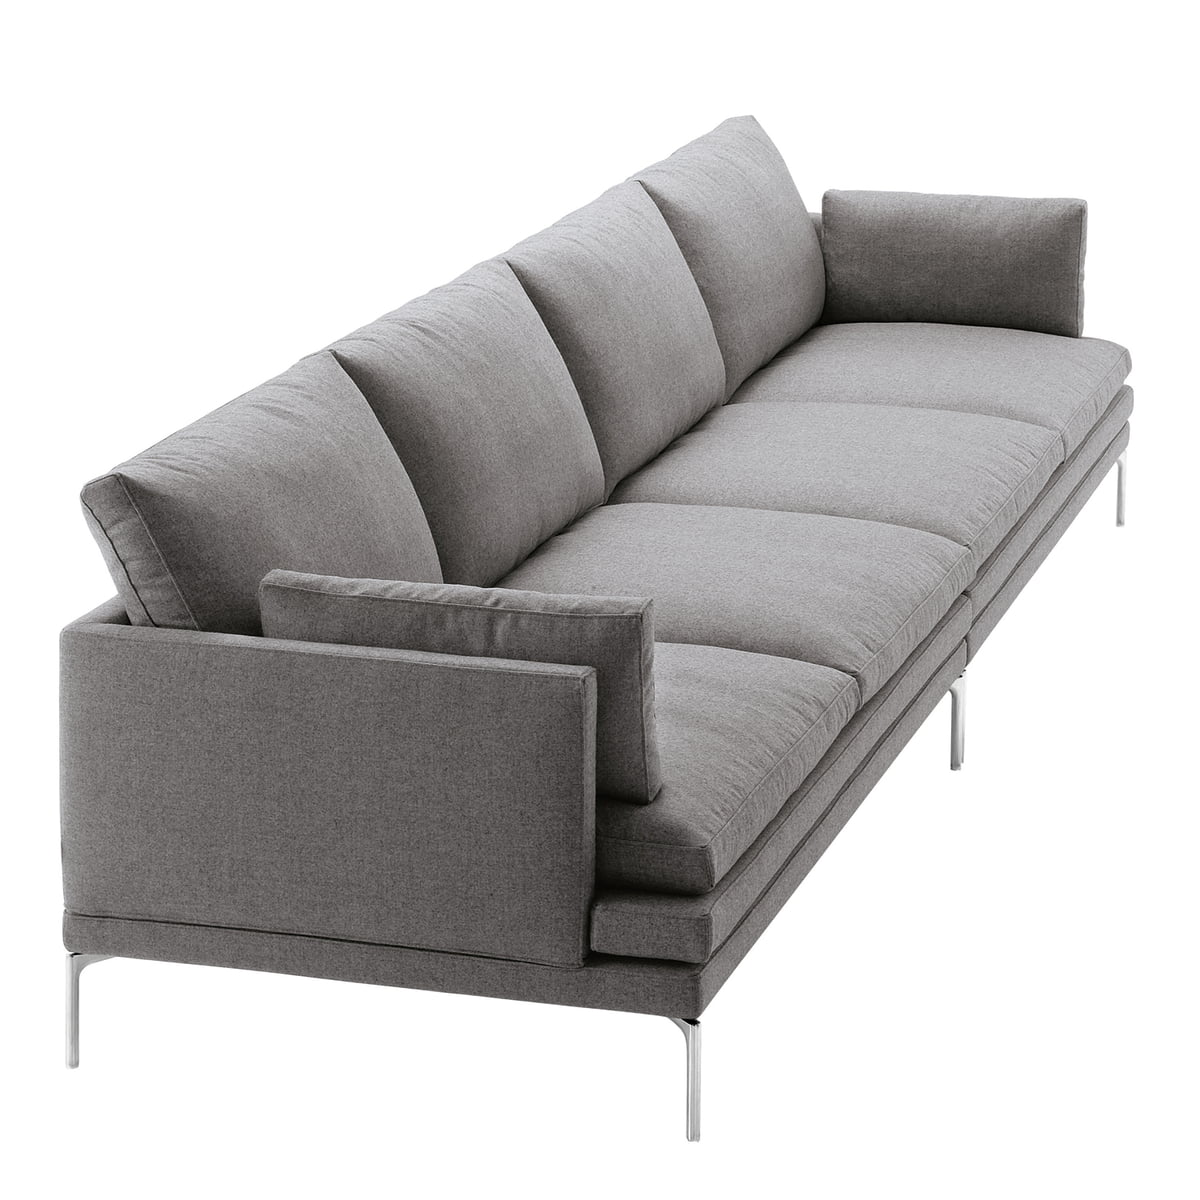 sofa stoff grau unterschied couch sofa missylaneous intended for 79 basic grau zweisitzer sofa. Black Bedroom Furniture Sets. Home Design Ideas